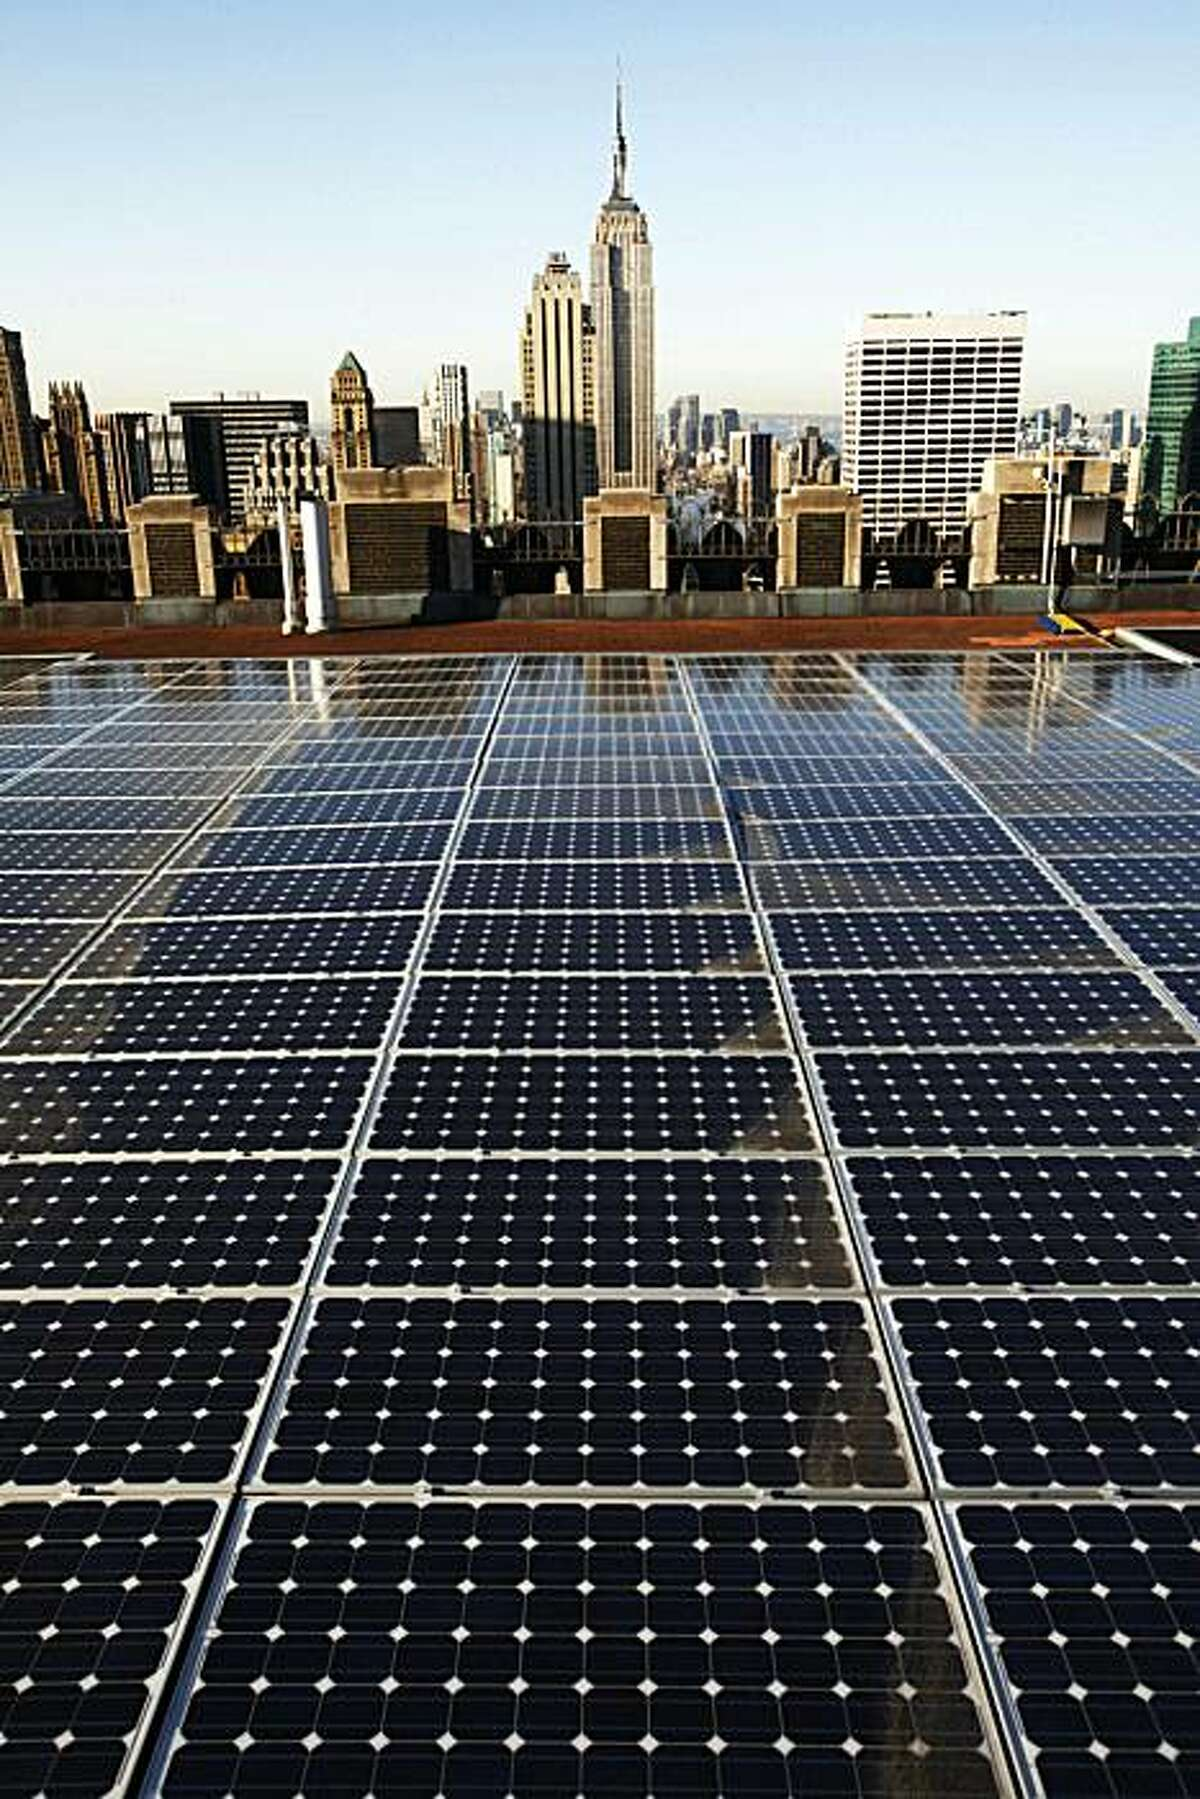 In this March 24, 2009 photo, solar panels are in place on a Rockefeller Center rooftop in midtown Manhattan in New York. The fledgling renewable energy industry has surged over much of the past decade, adding jobs at more than twice the national rate, according to a Pew Charitable Trusts study released Wednesday, June 10, 2009.(AP Photo/Mark Lennihan)